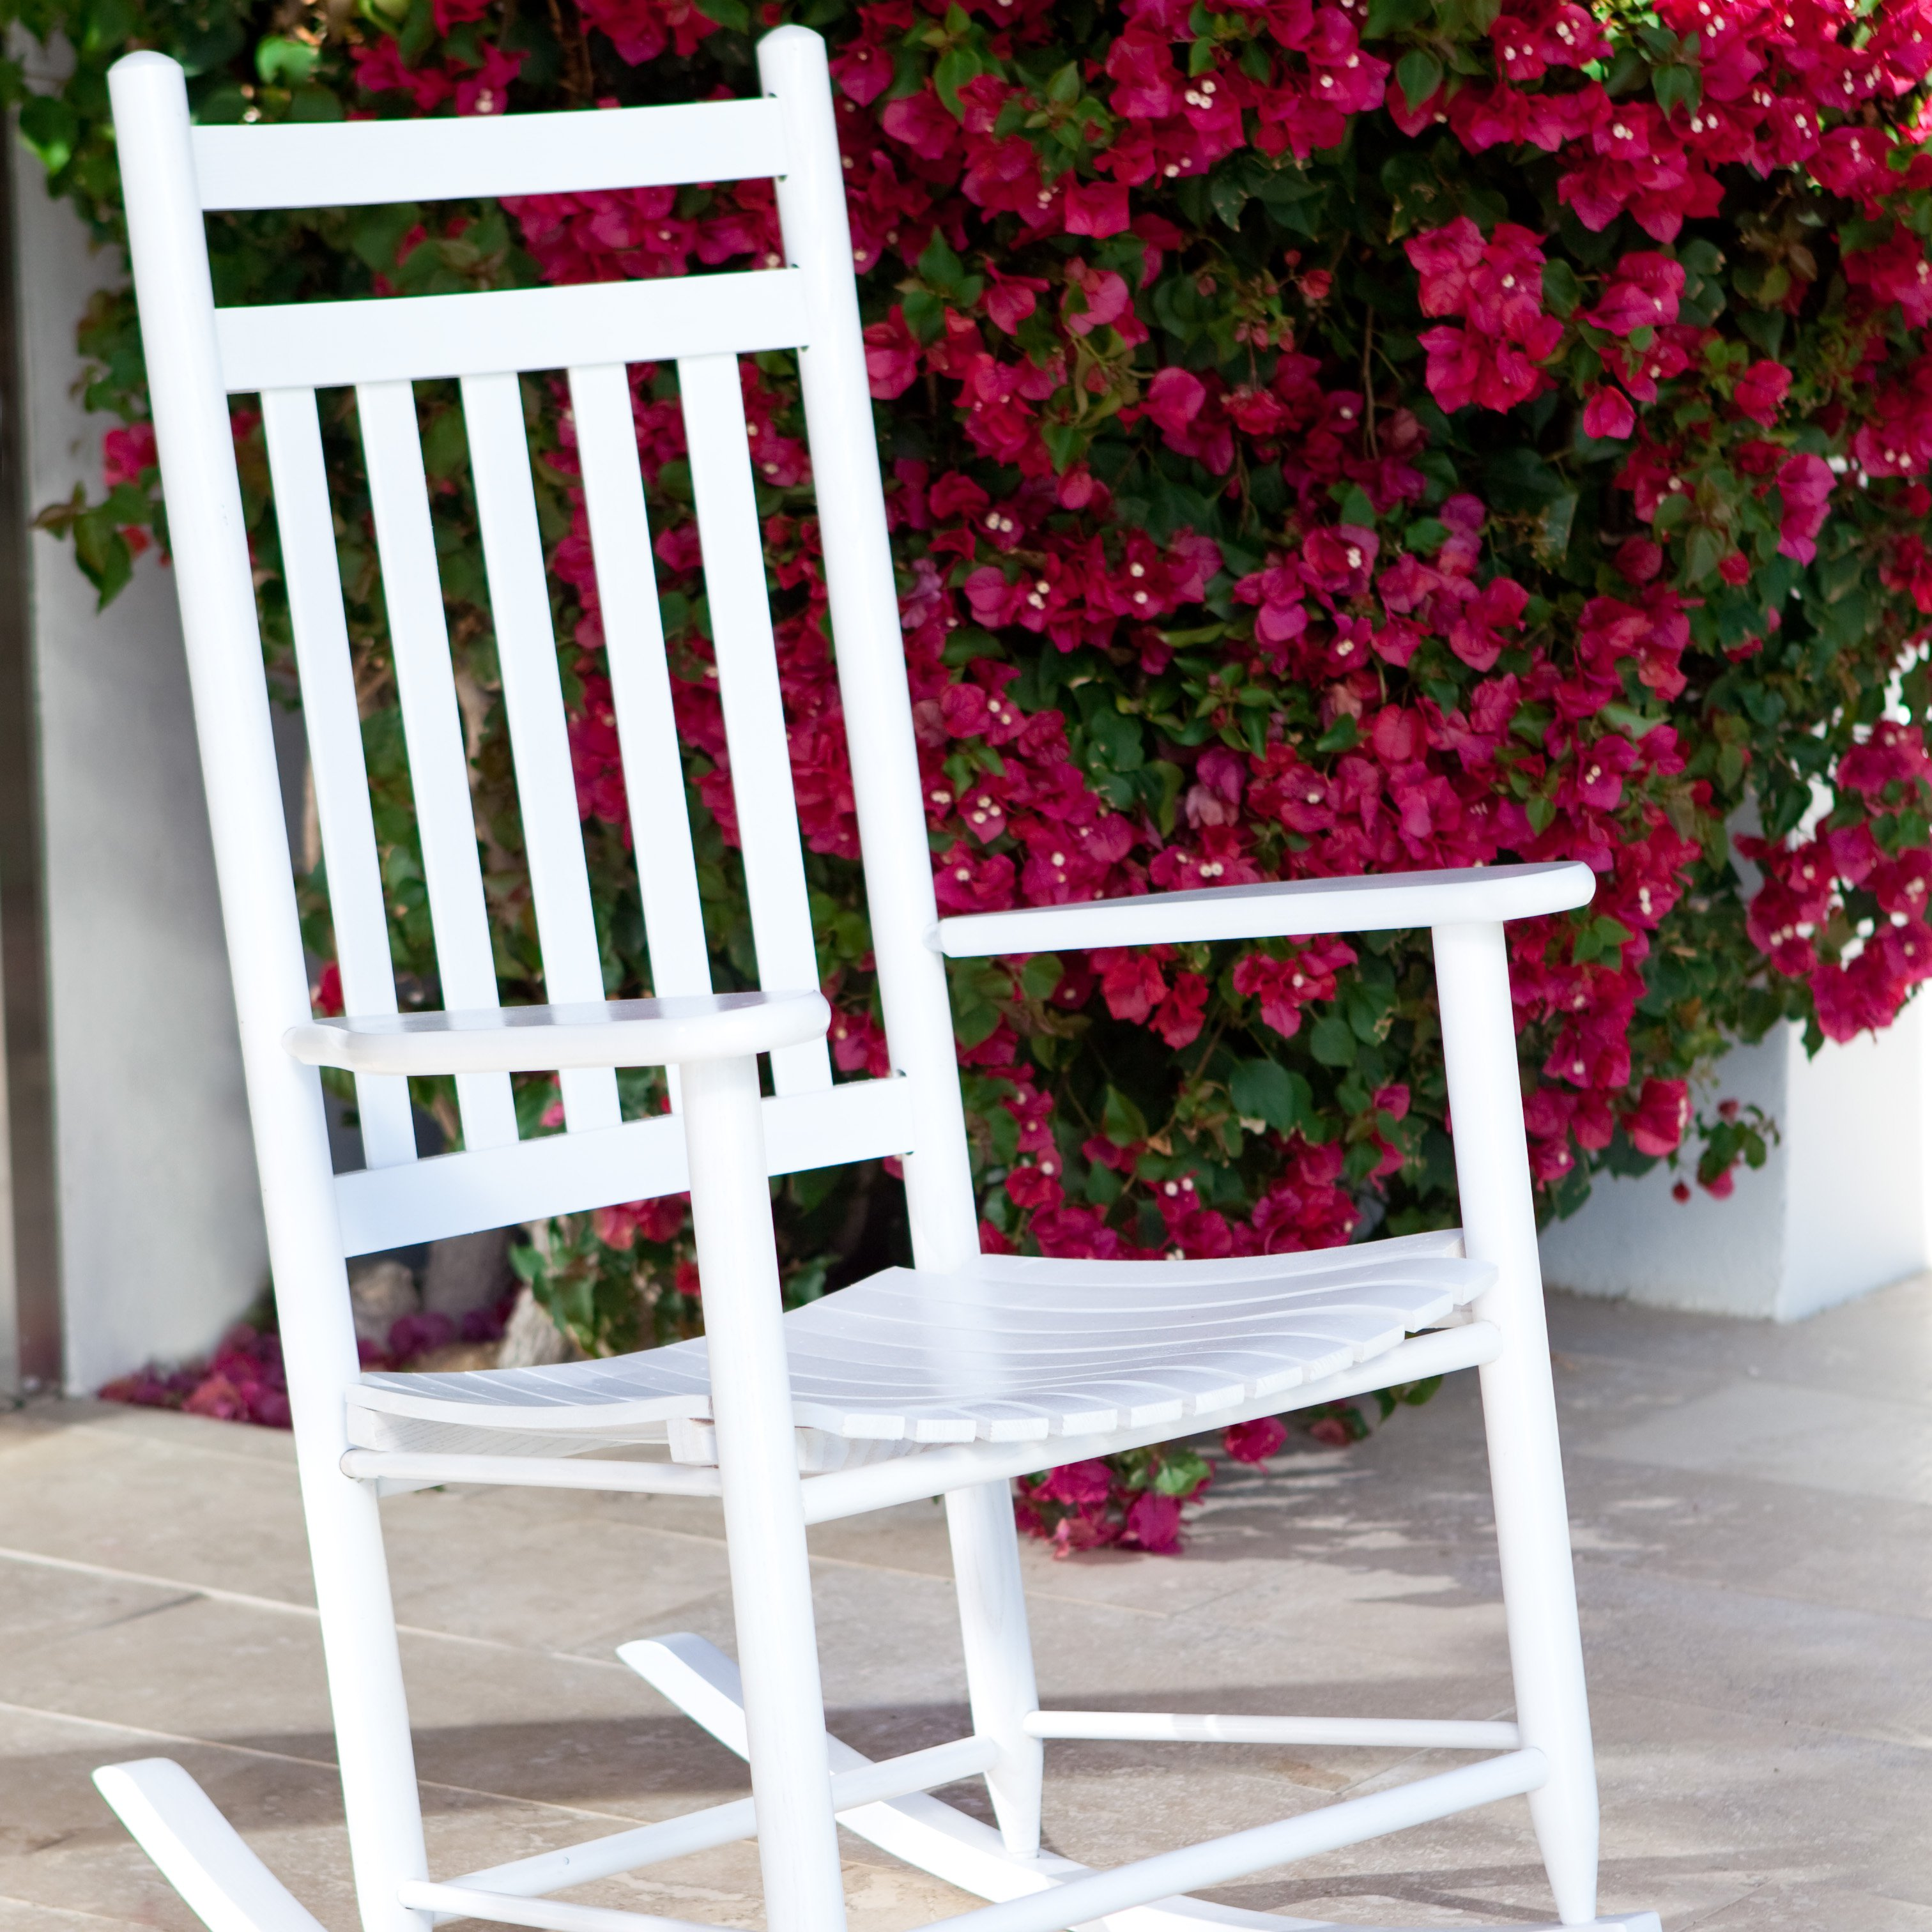 Dixie Seating Indoor/Outdoor Slat Rocking Chair - White